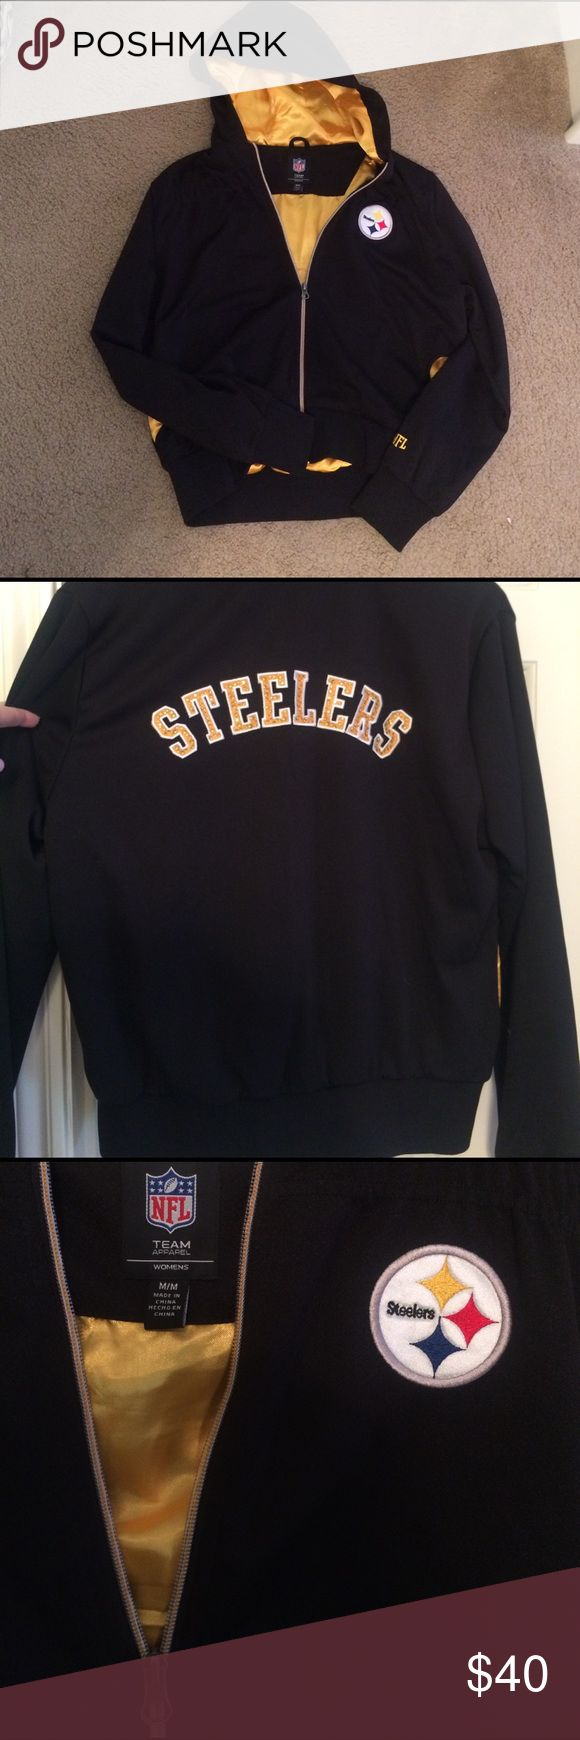 NFL Steelers zip up hoodie 💛🖤 Black and Gold NFL store Steelers zip up hoodie with glitzy logo along the back and gold interior NFL Jackets & Coats